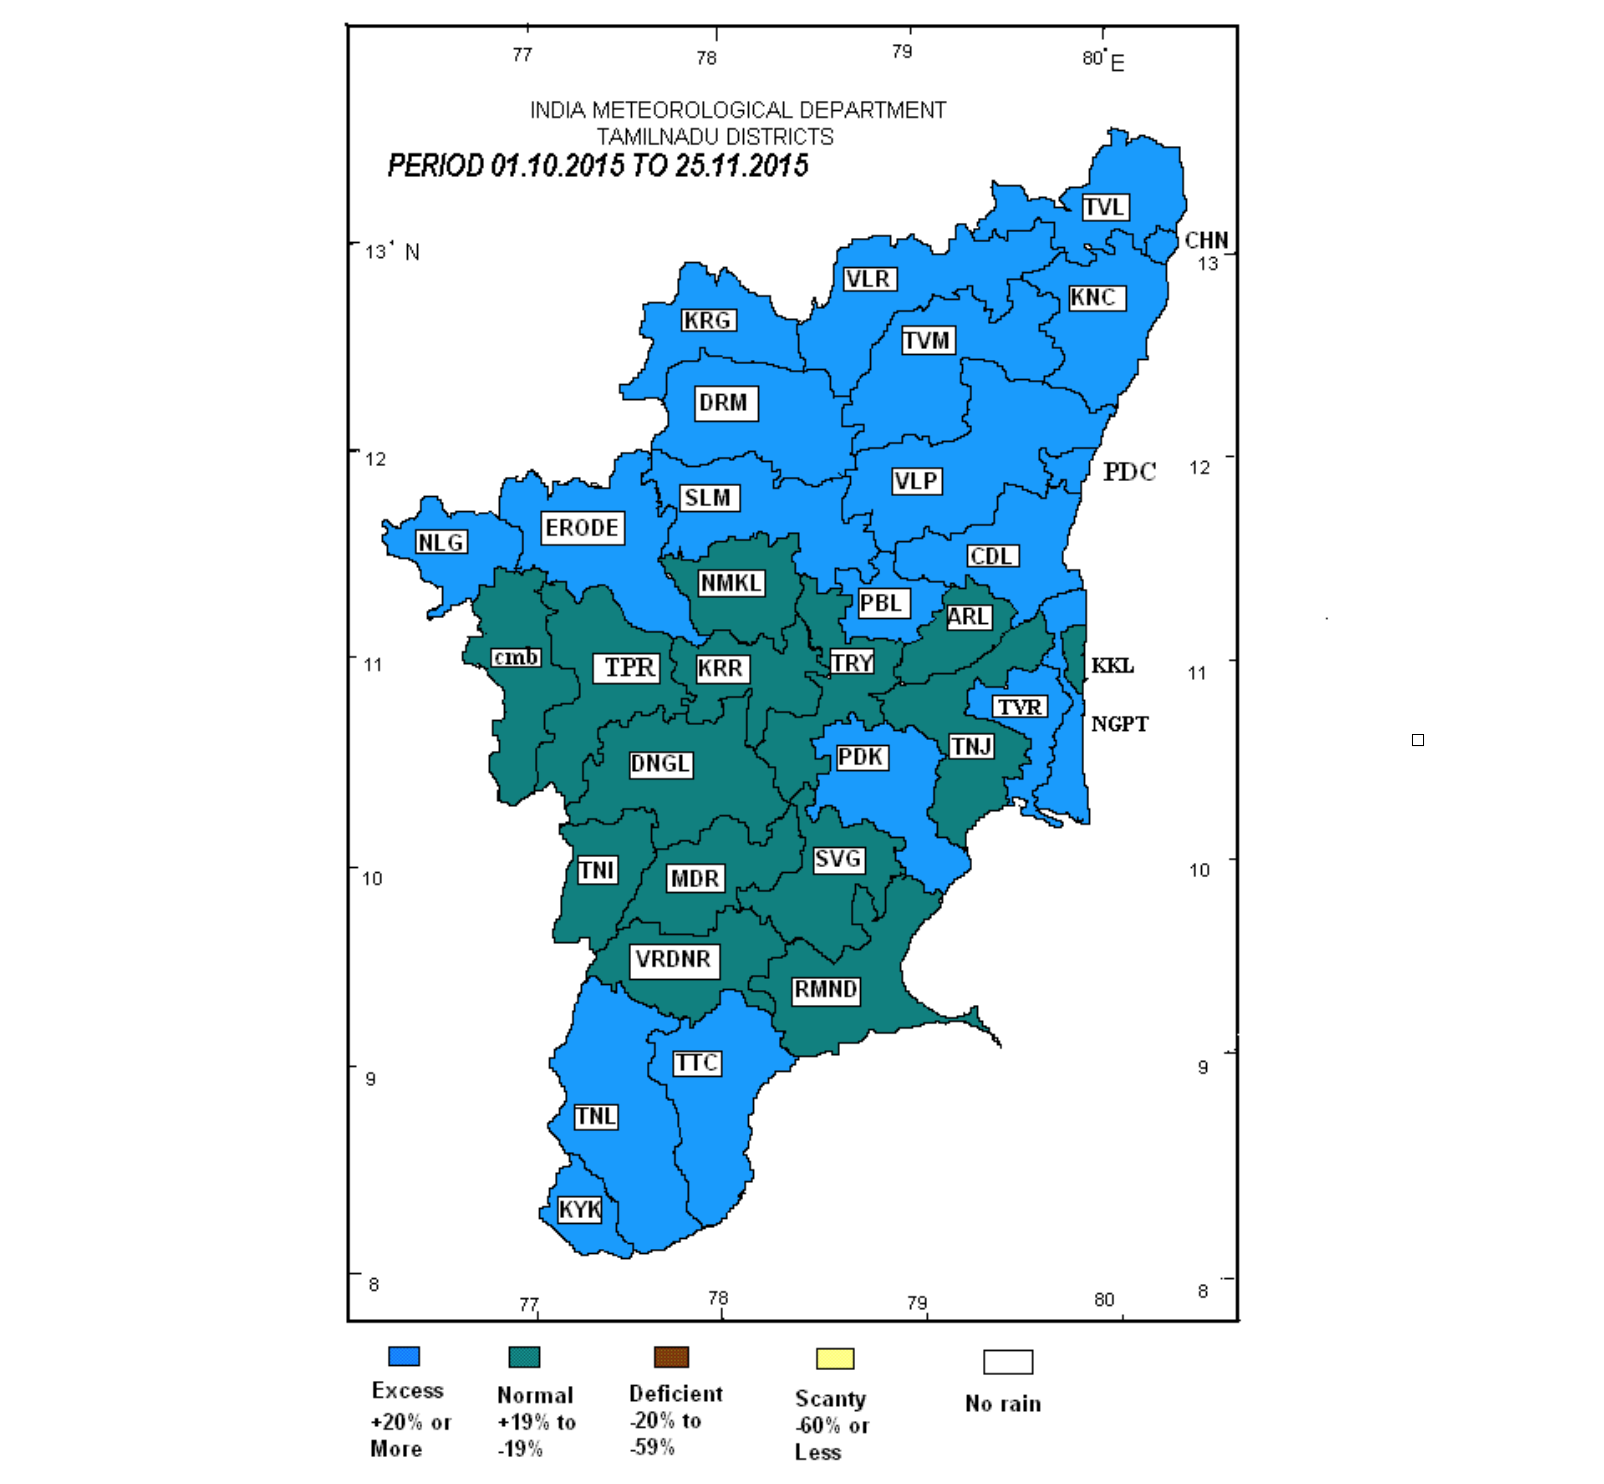 District rainfall map of Tamil Nadu (1st October to 25th November period) showing districts with normal and excess rainfall. 